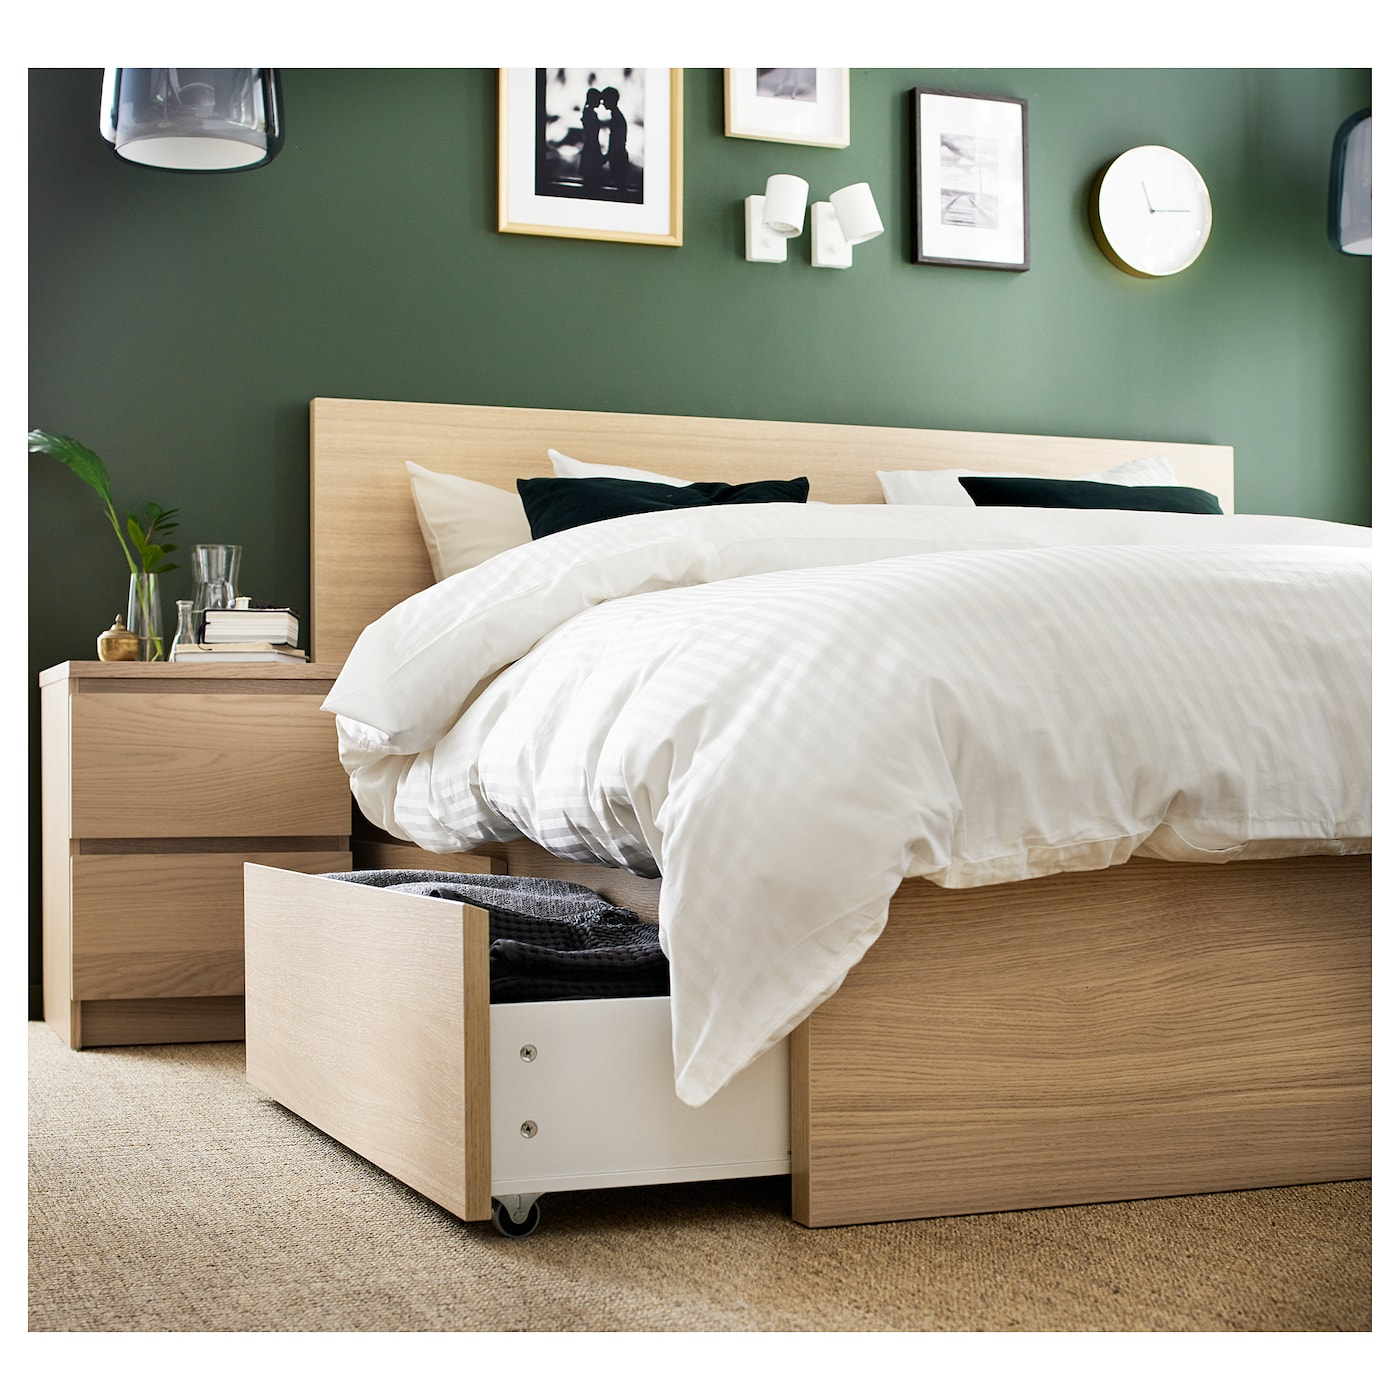 ikea malm bed with drawers